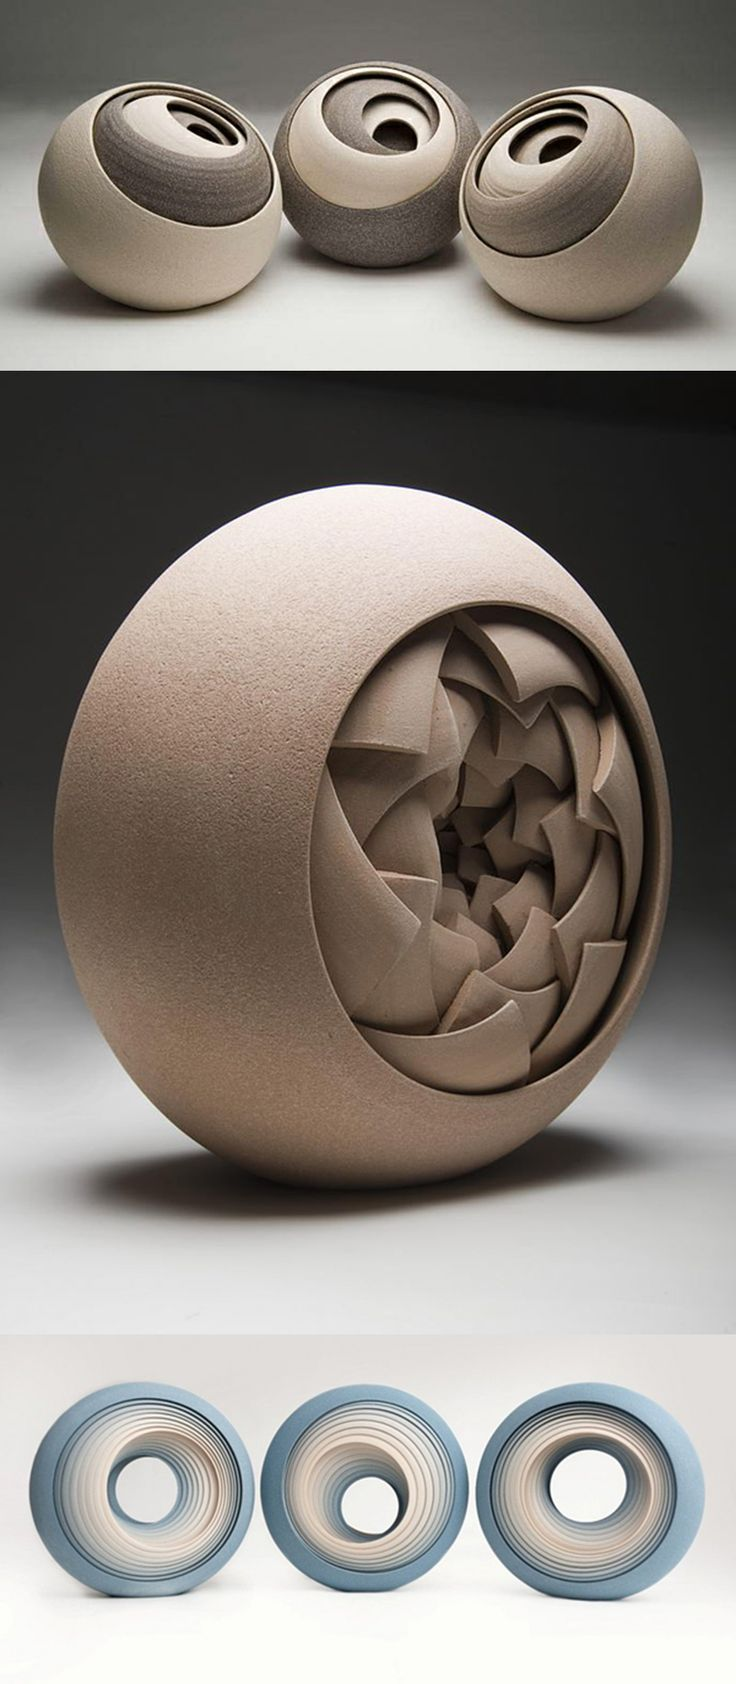 Contemporary Ceramic Sculptures by Matthew Chambers. His works were born of a love for geometric shapes and constructivists, combined with the earthy tones of the ceramic. Each piece is constructed from multiple concentric layers that form circular objects. #FredericClad